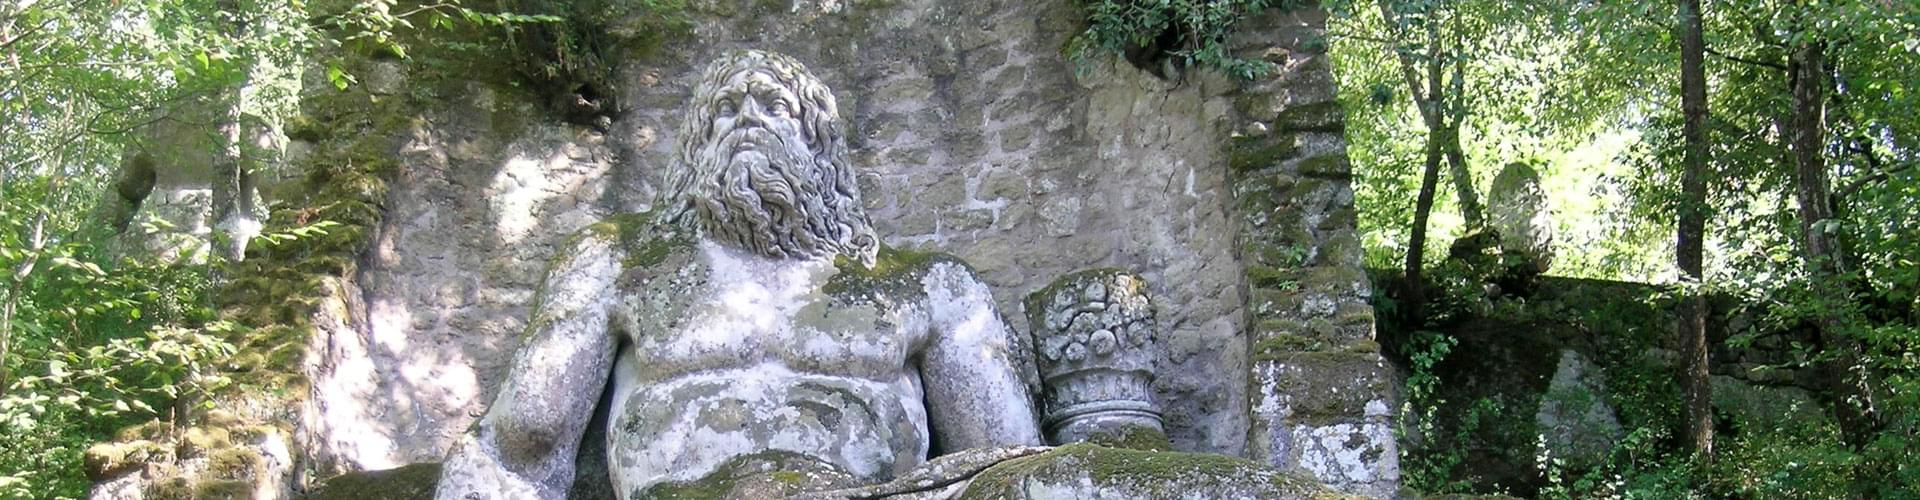 Gardens of Bomarzo, Parco dei Mostri, Monster Park, Sacred Forest, Villa of Wonders